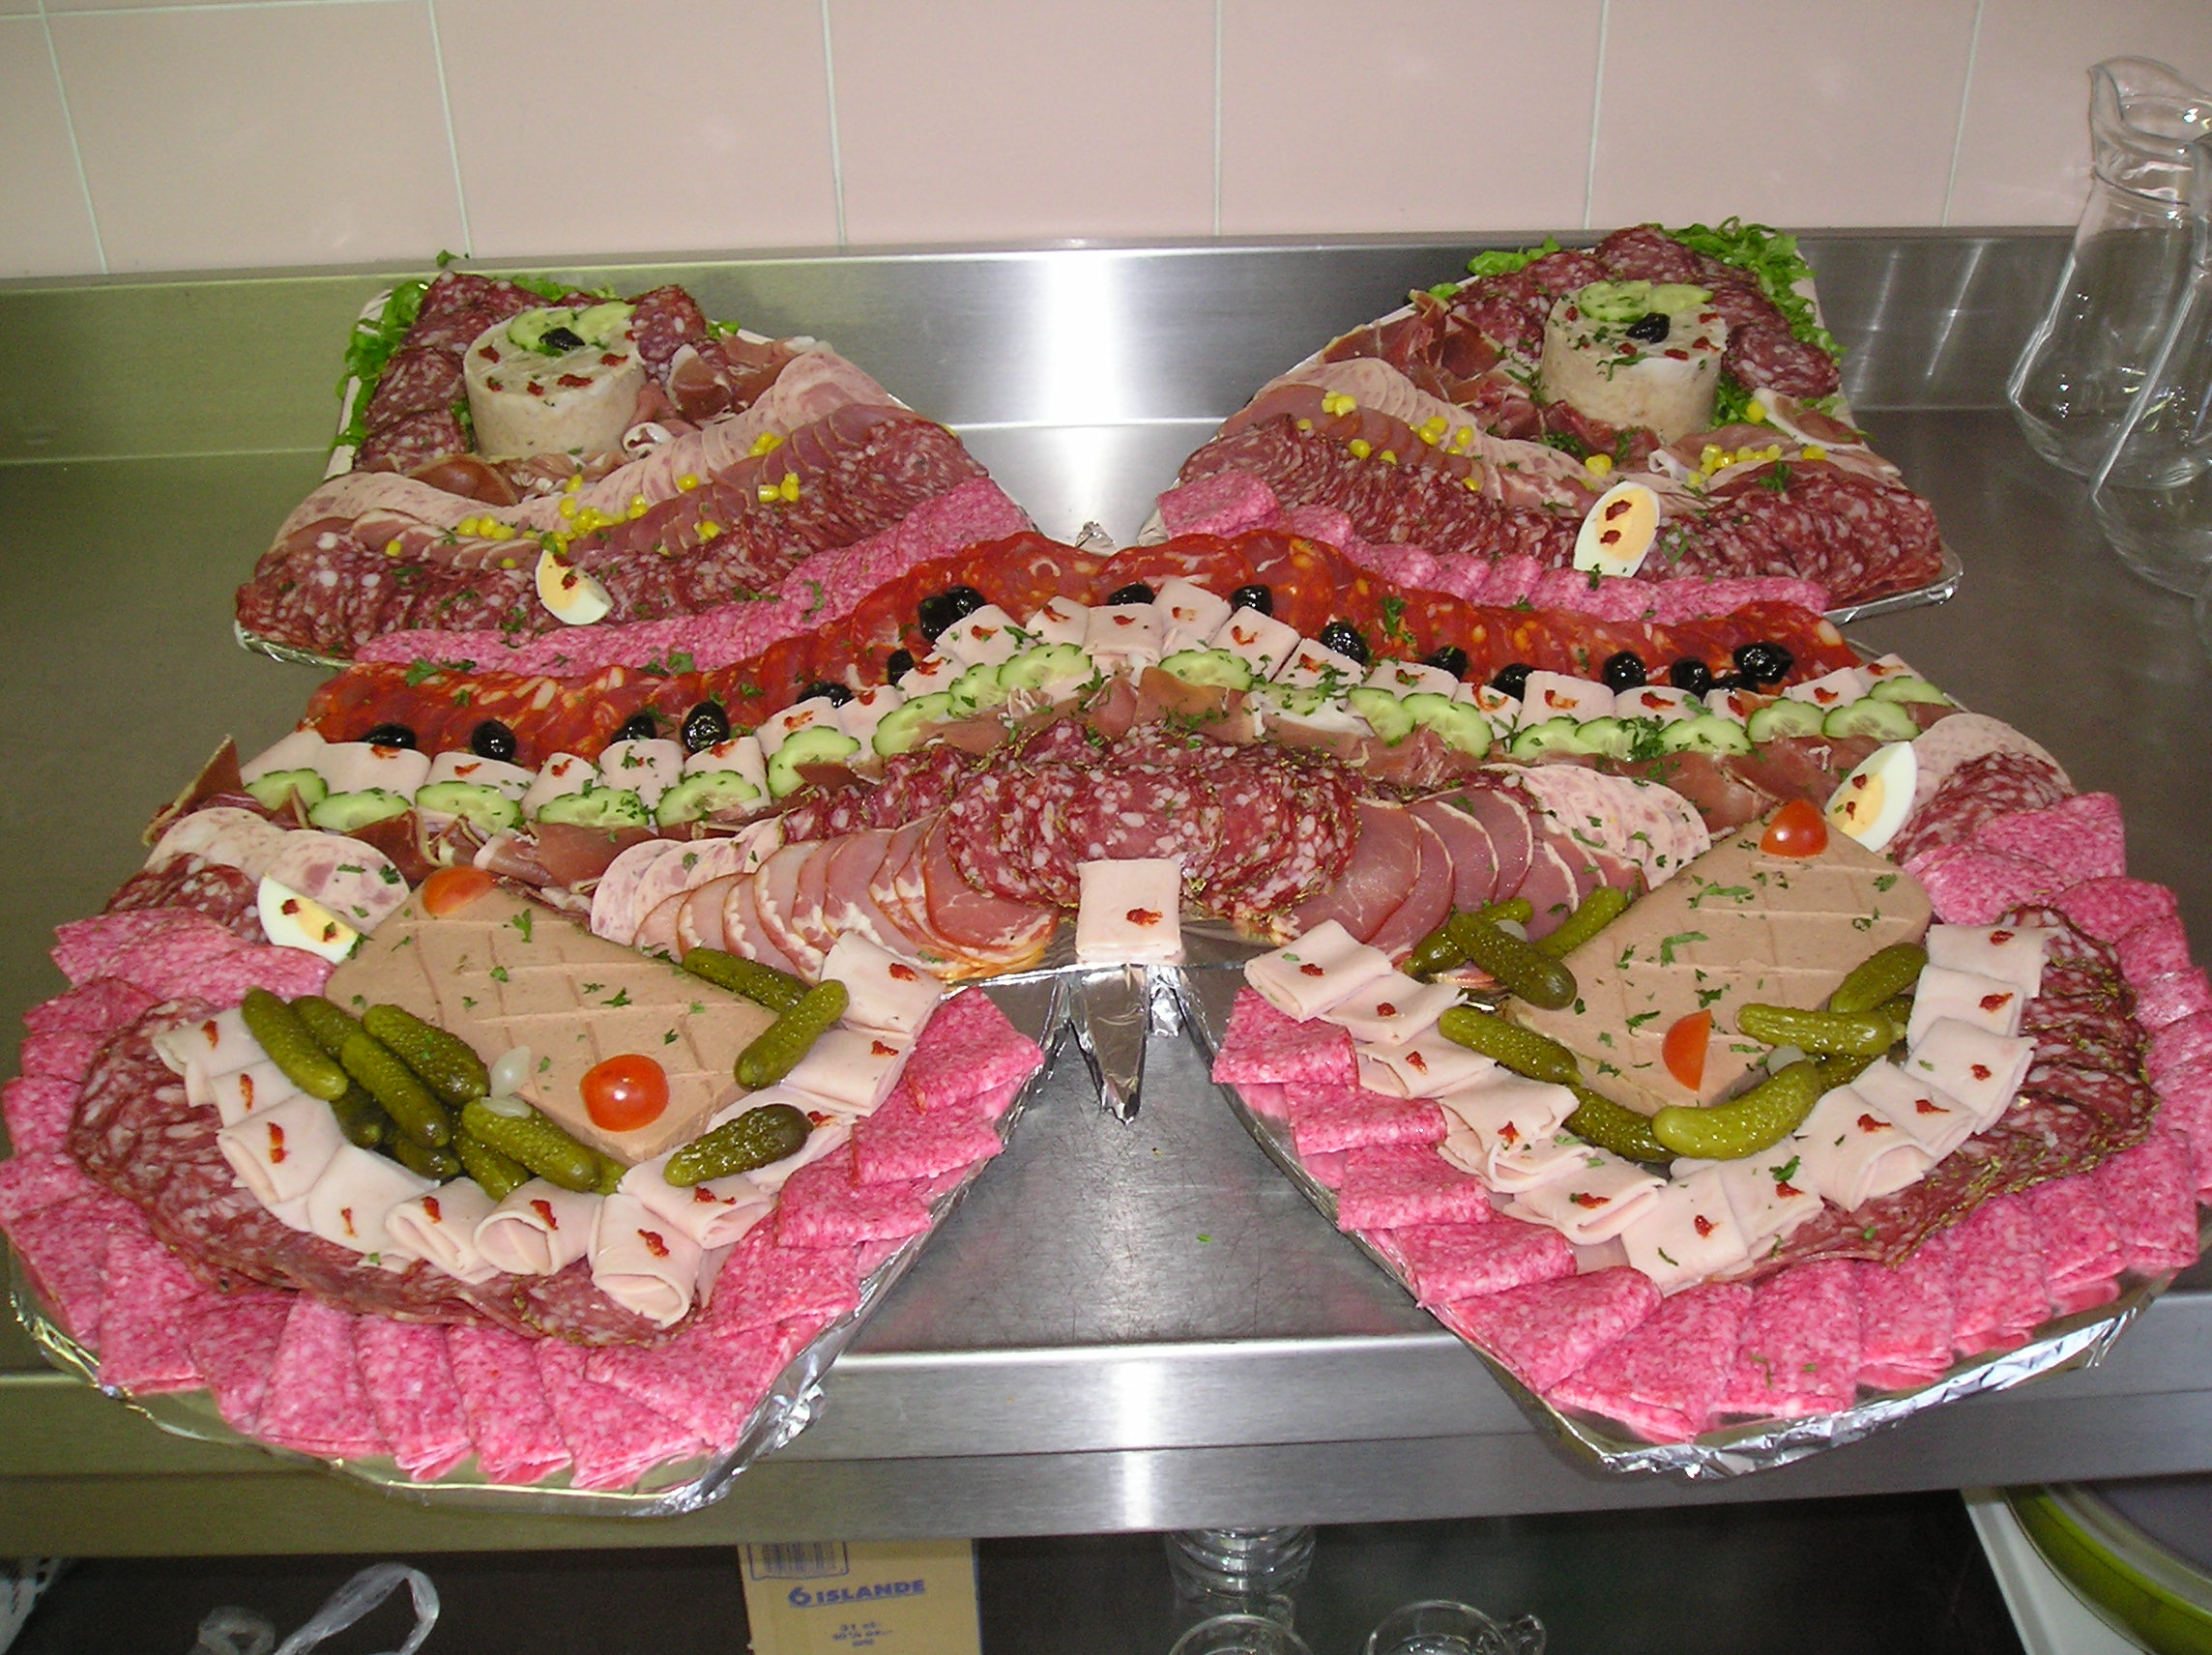 Les photos de buffet froid - Idee presentation buffet froid ...